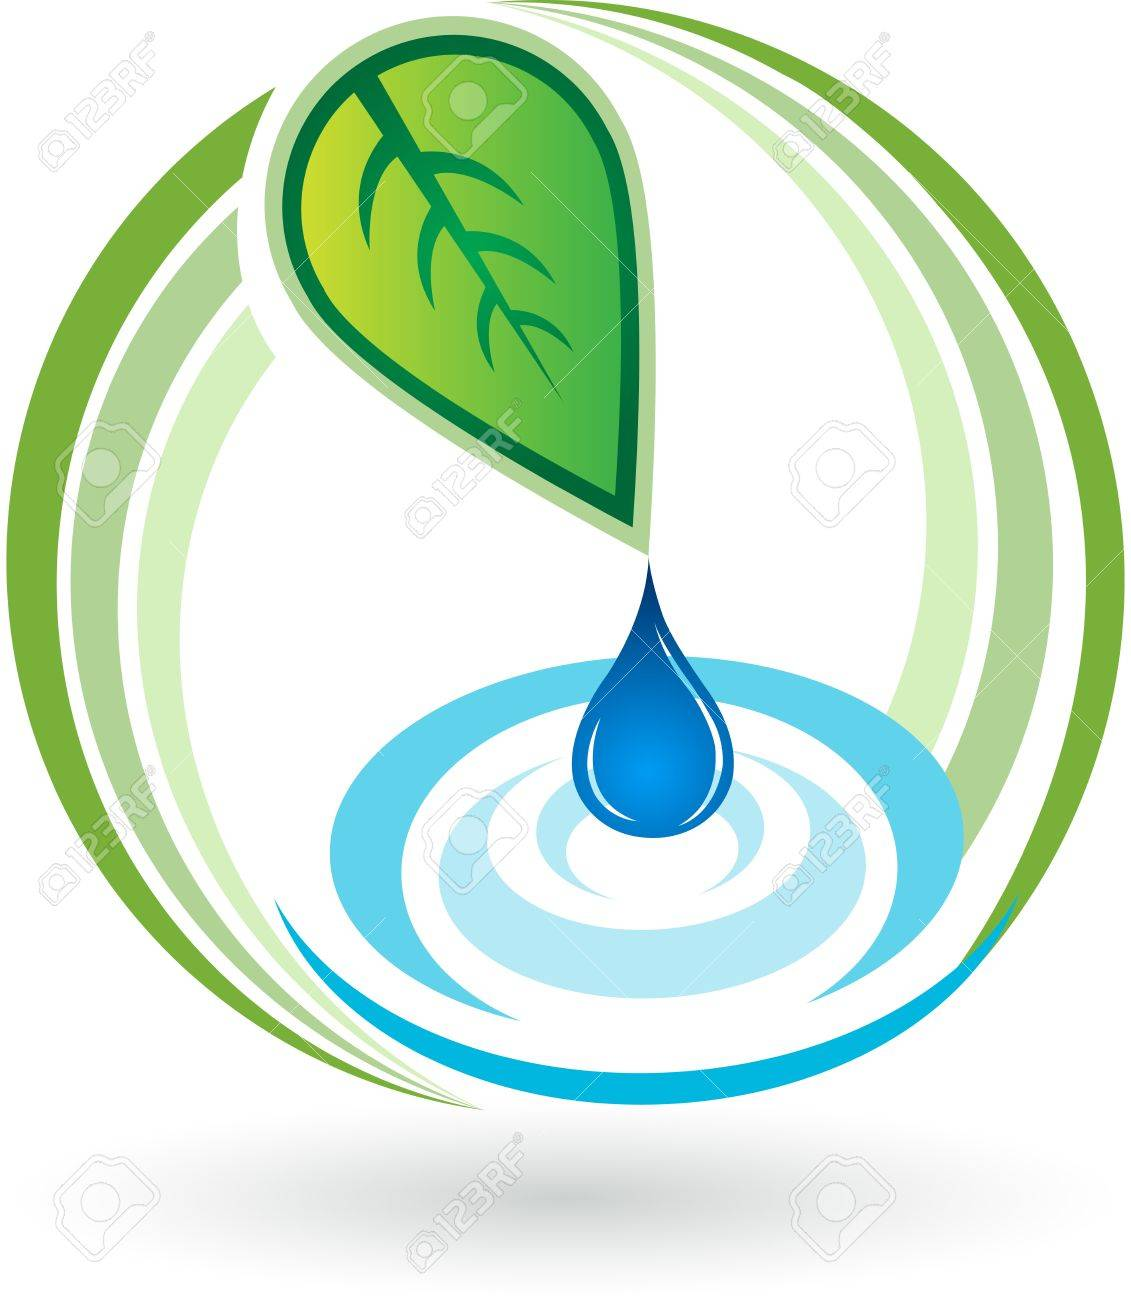 illustration art of a water ripples thumbnail with isolated rh 123rf com water ripple vector free water ripple pattern vector